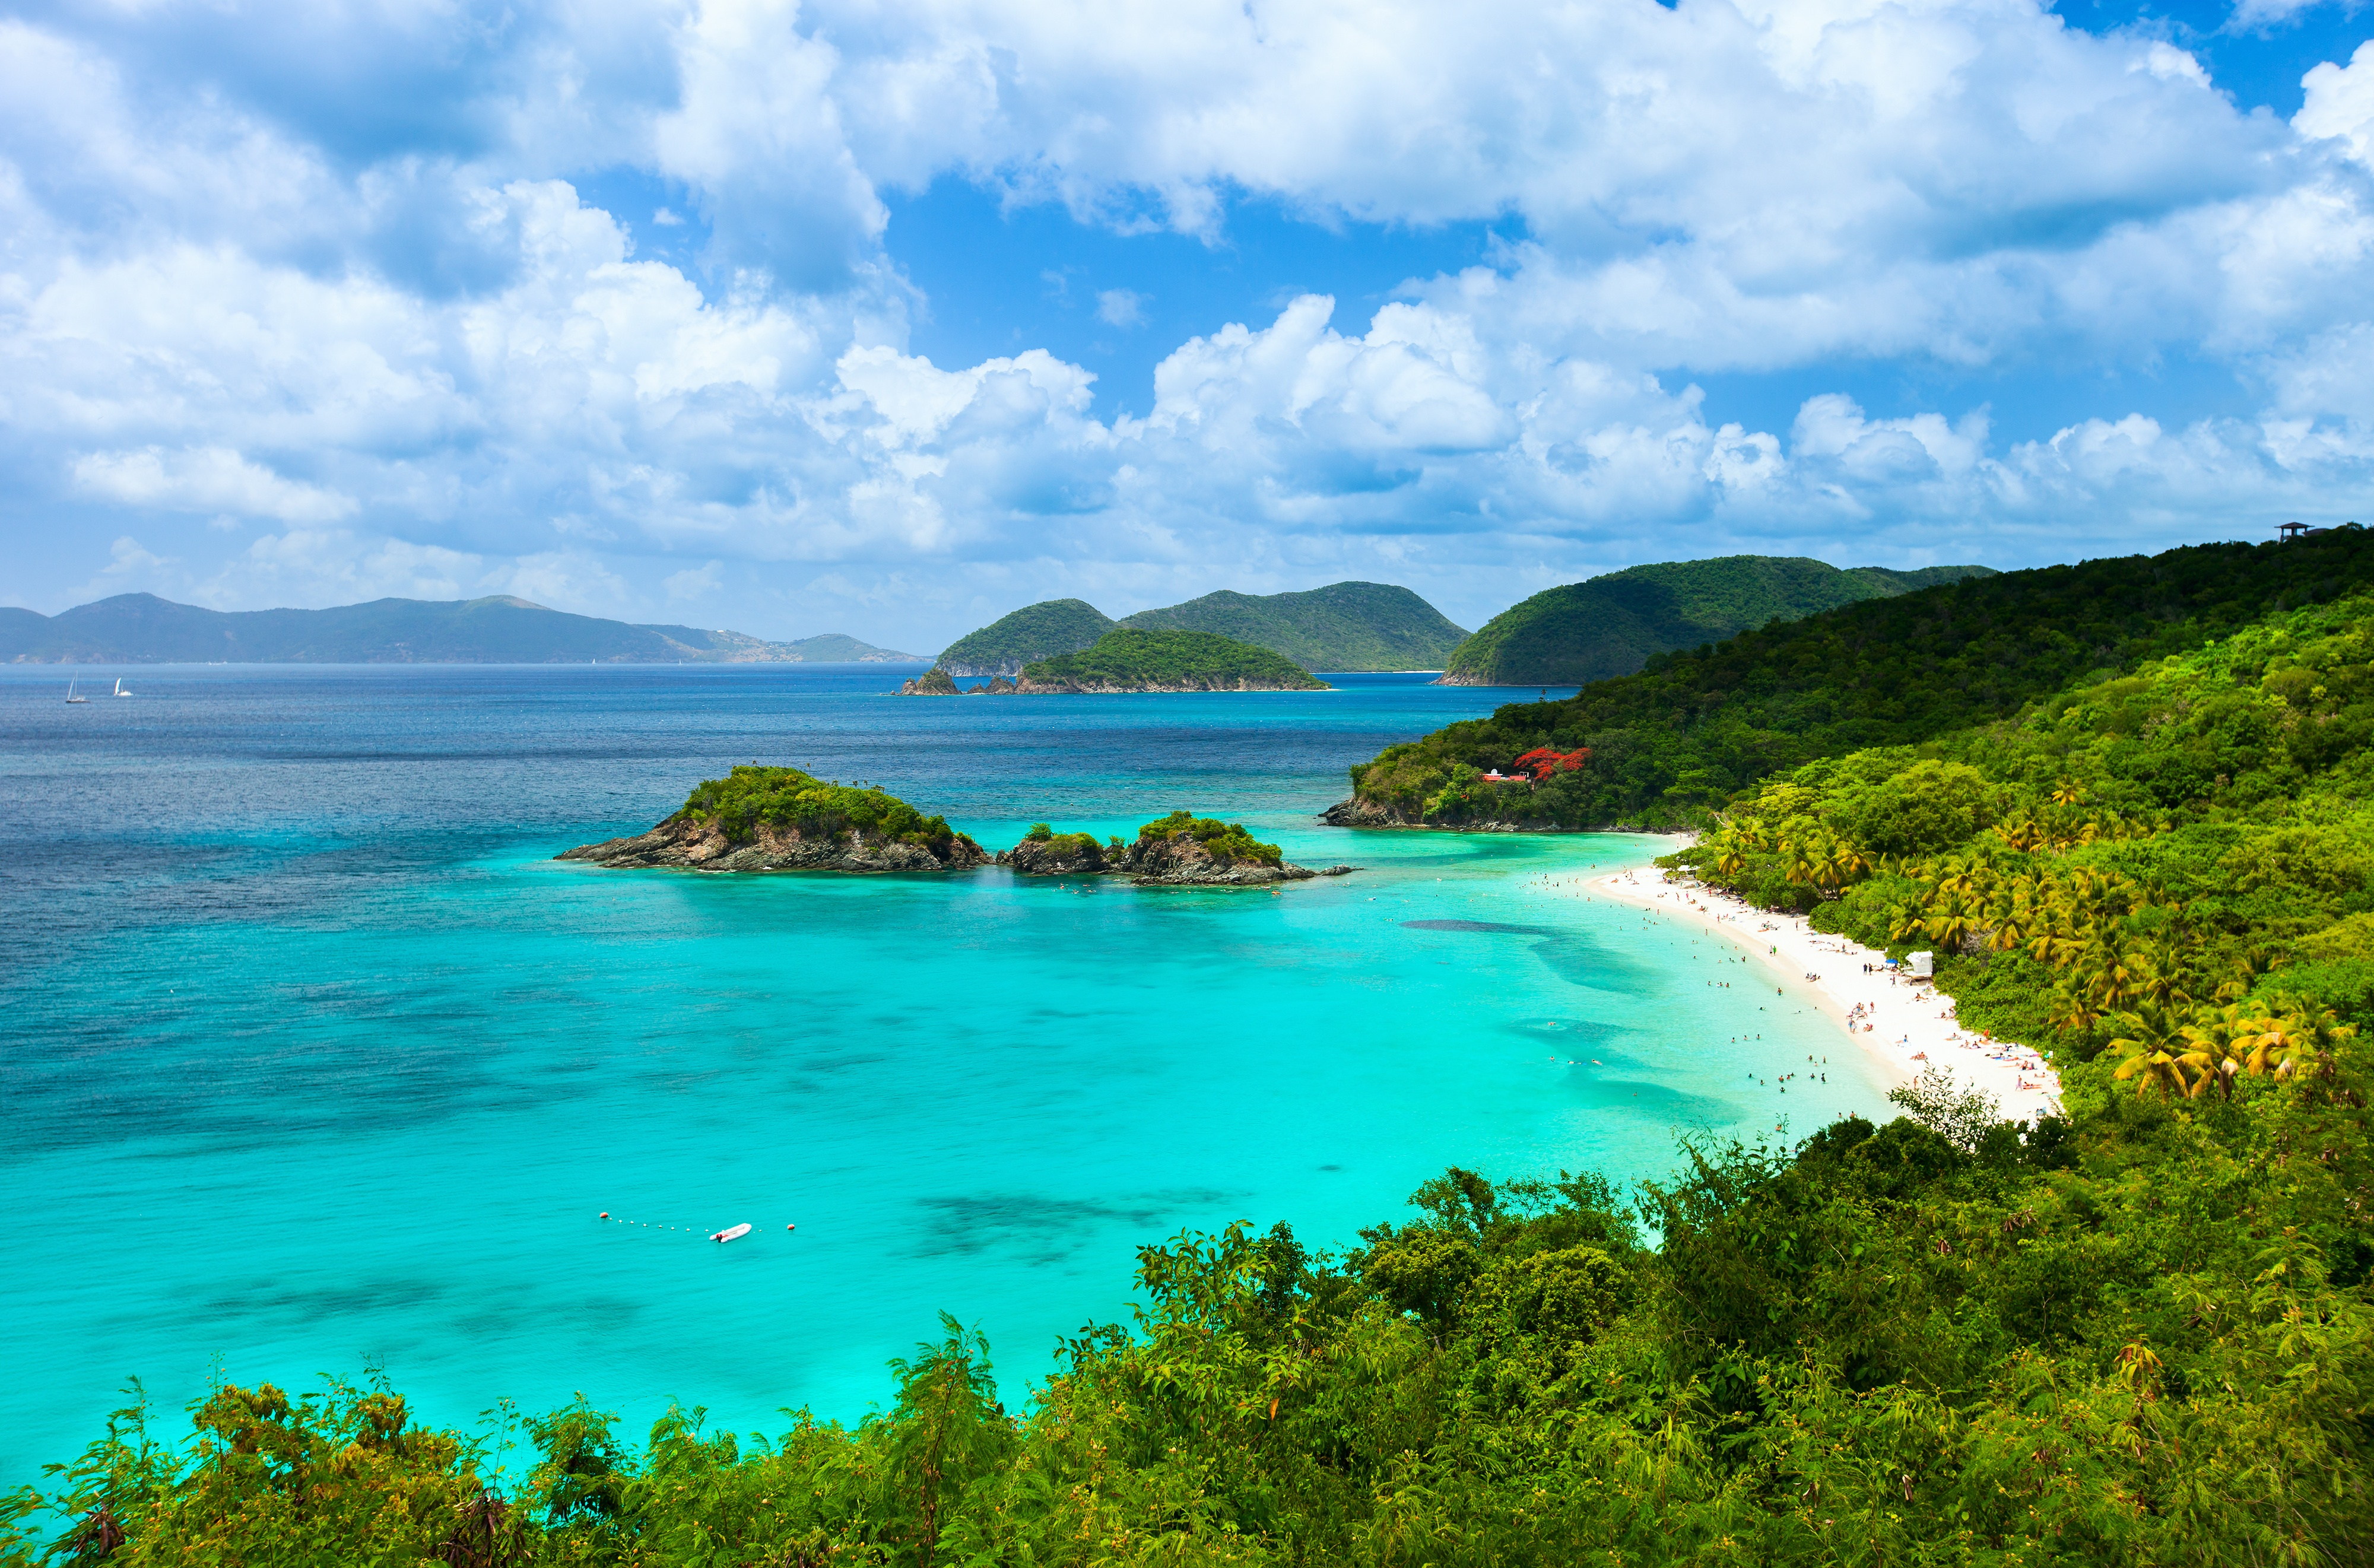 The U.S. Virgin Islands are a tropical haven of white sand beaches, vibrant music and culture, and nature preserves full of exotic plants and animals.